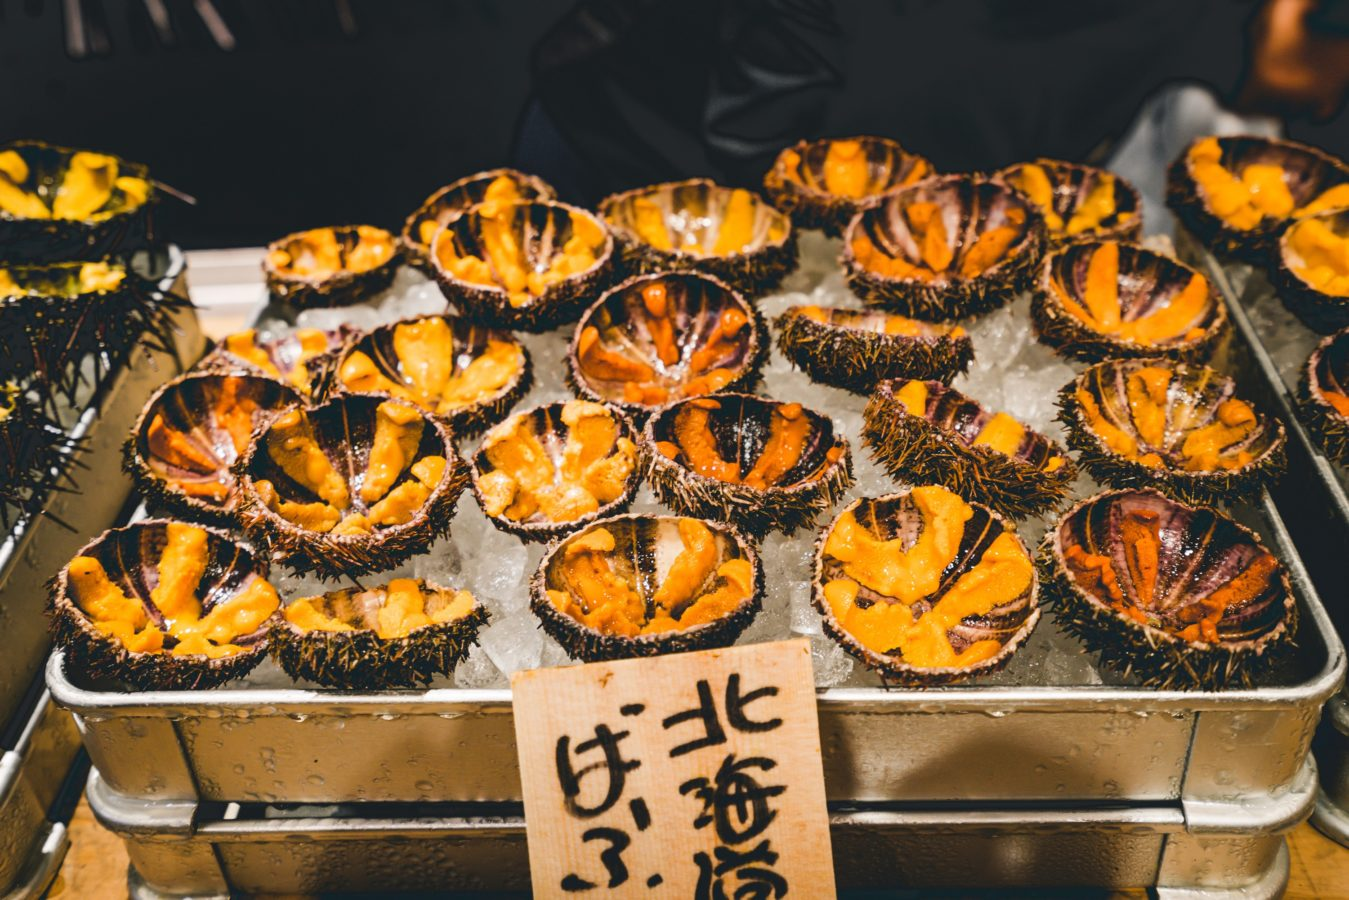 What is uni and why gourmets and chefs can't get enough of it?